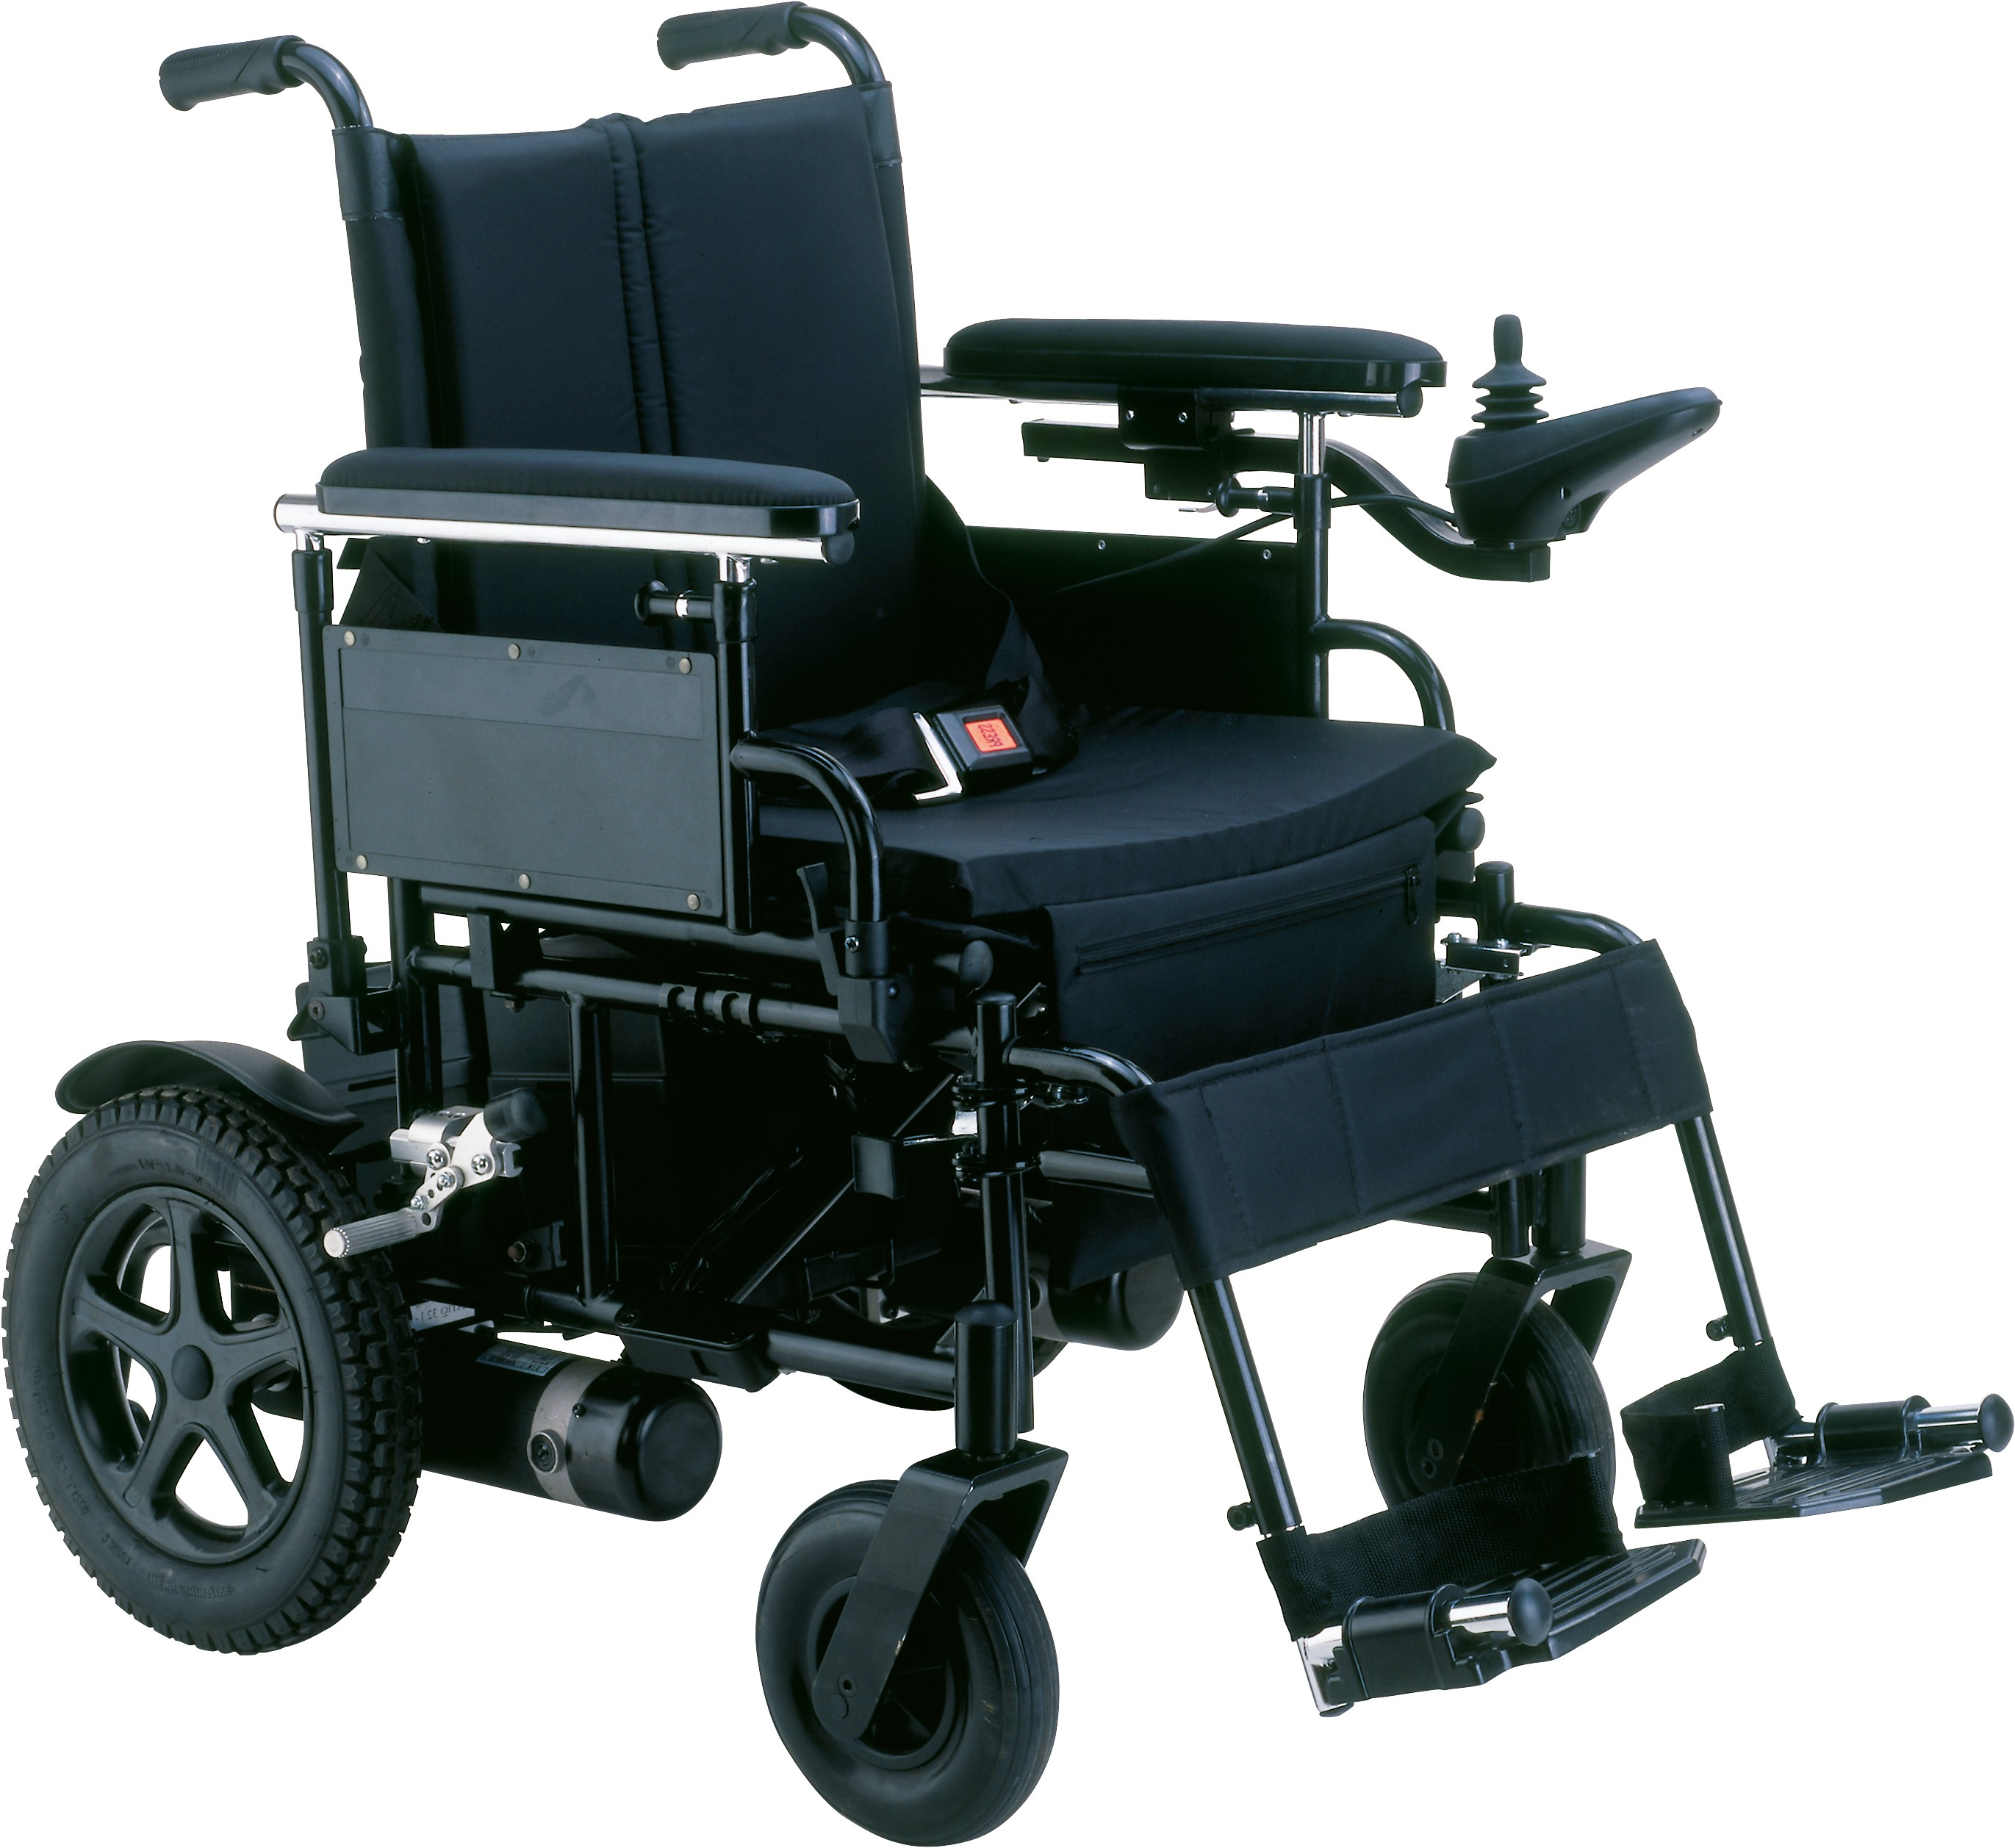 Cirrus Plus Hd Heavy Duty Folding Power Wheelchair Rear